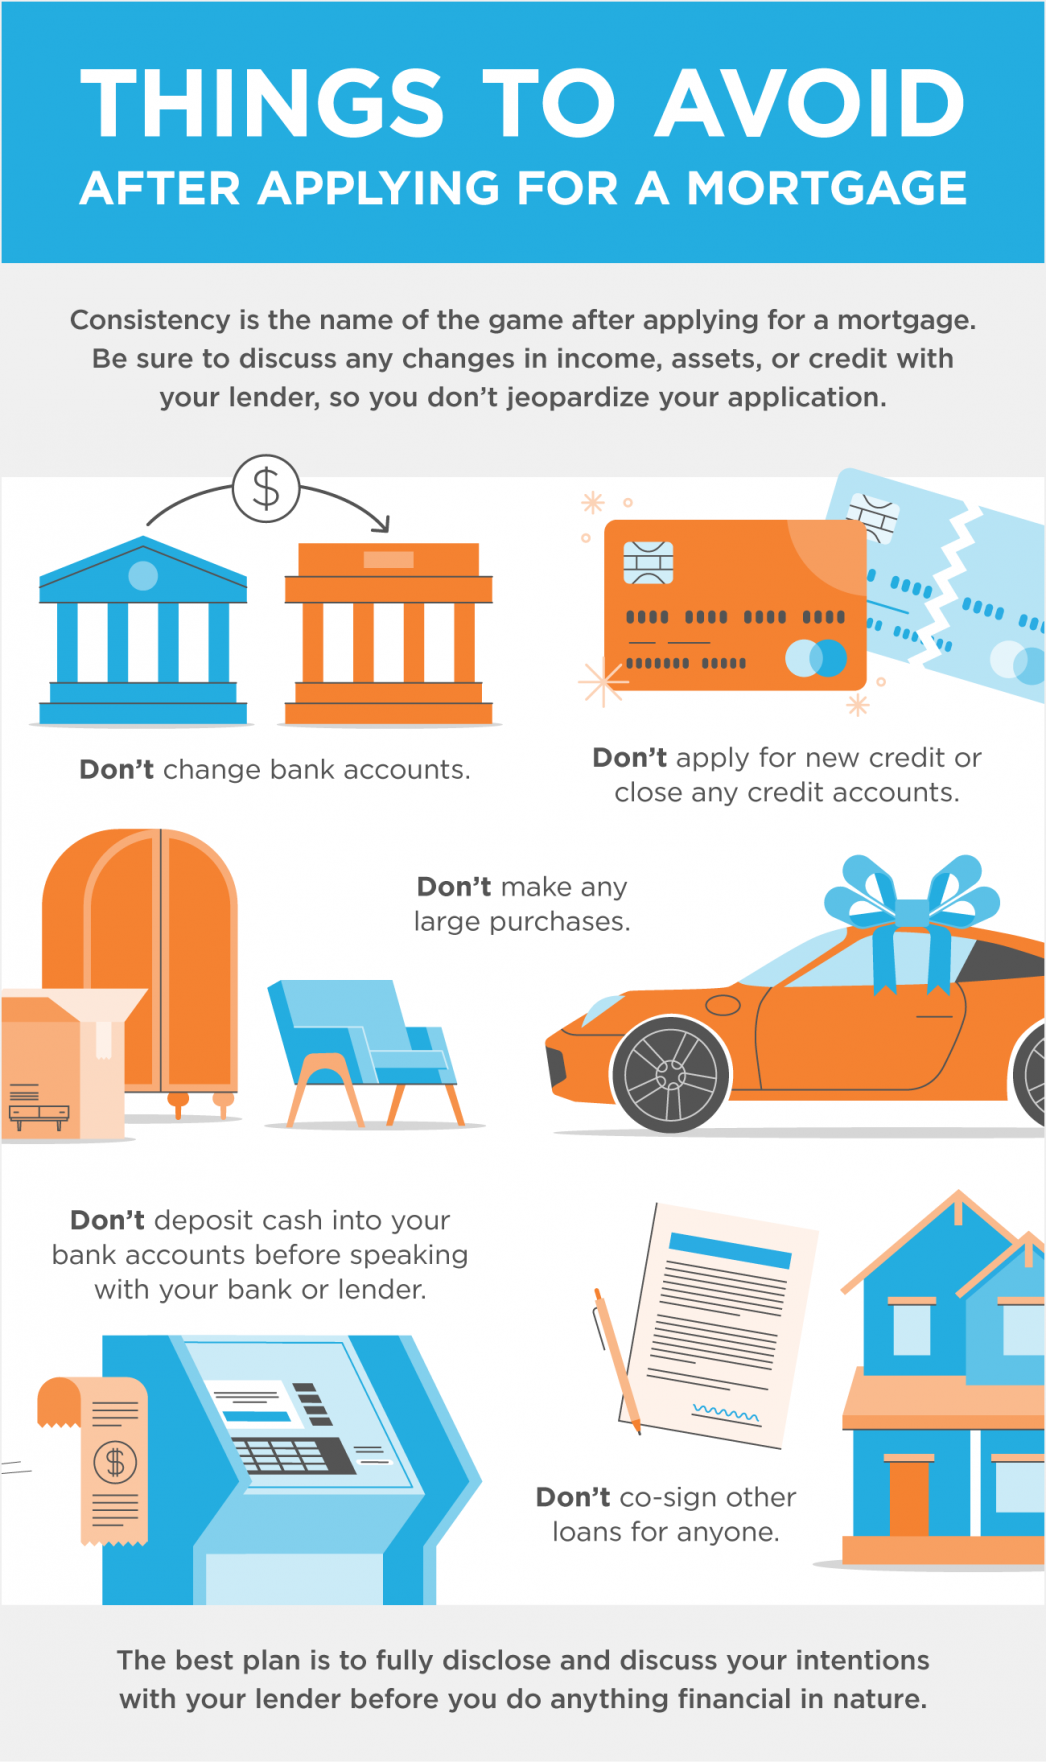 Things to Avoid after Applying for a Mortgage [INFOGRAPHIC]